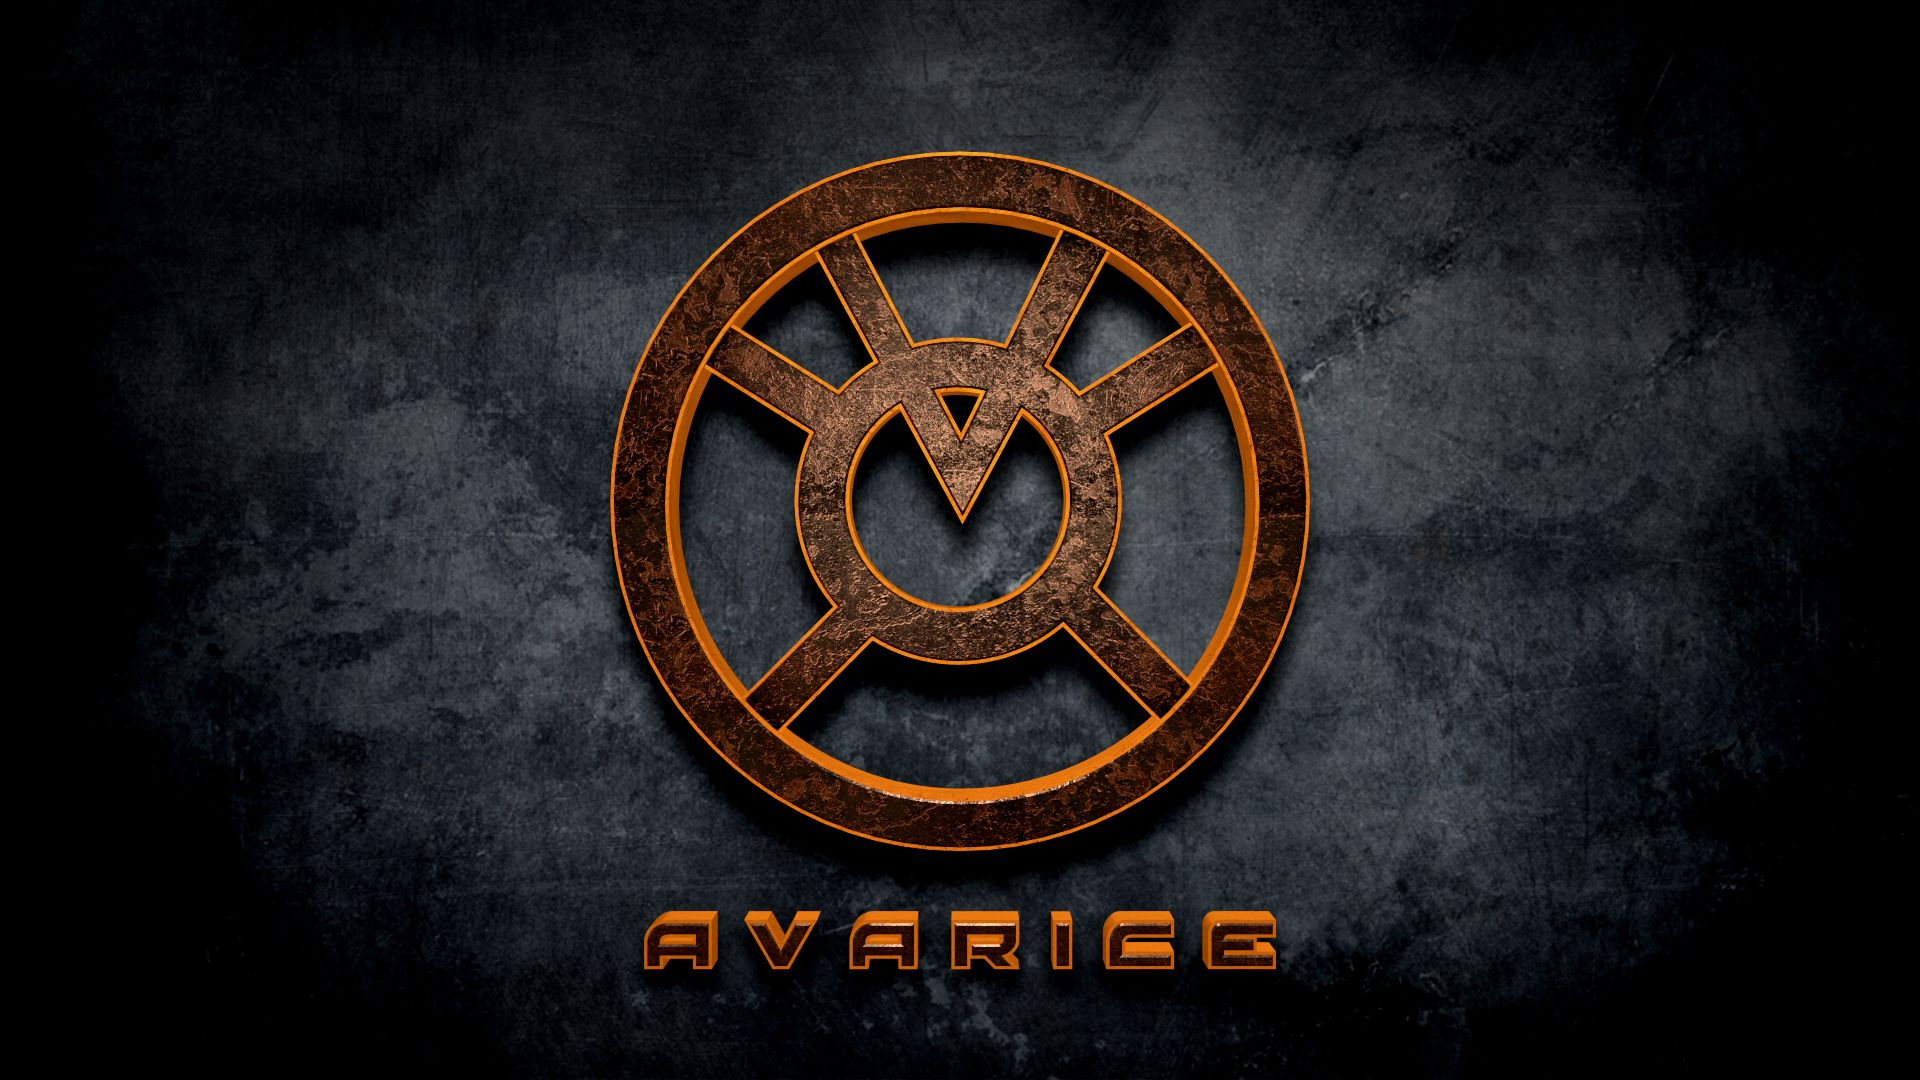 12orangelanterng 19201080 logos marvel vs dc comic 12orangelanterng 19201080 logos marvel vs dc comic pinterest marvel vs marvel and comic biocorpaavc Gallery